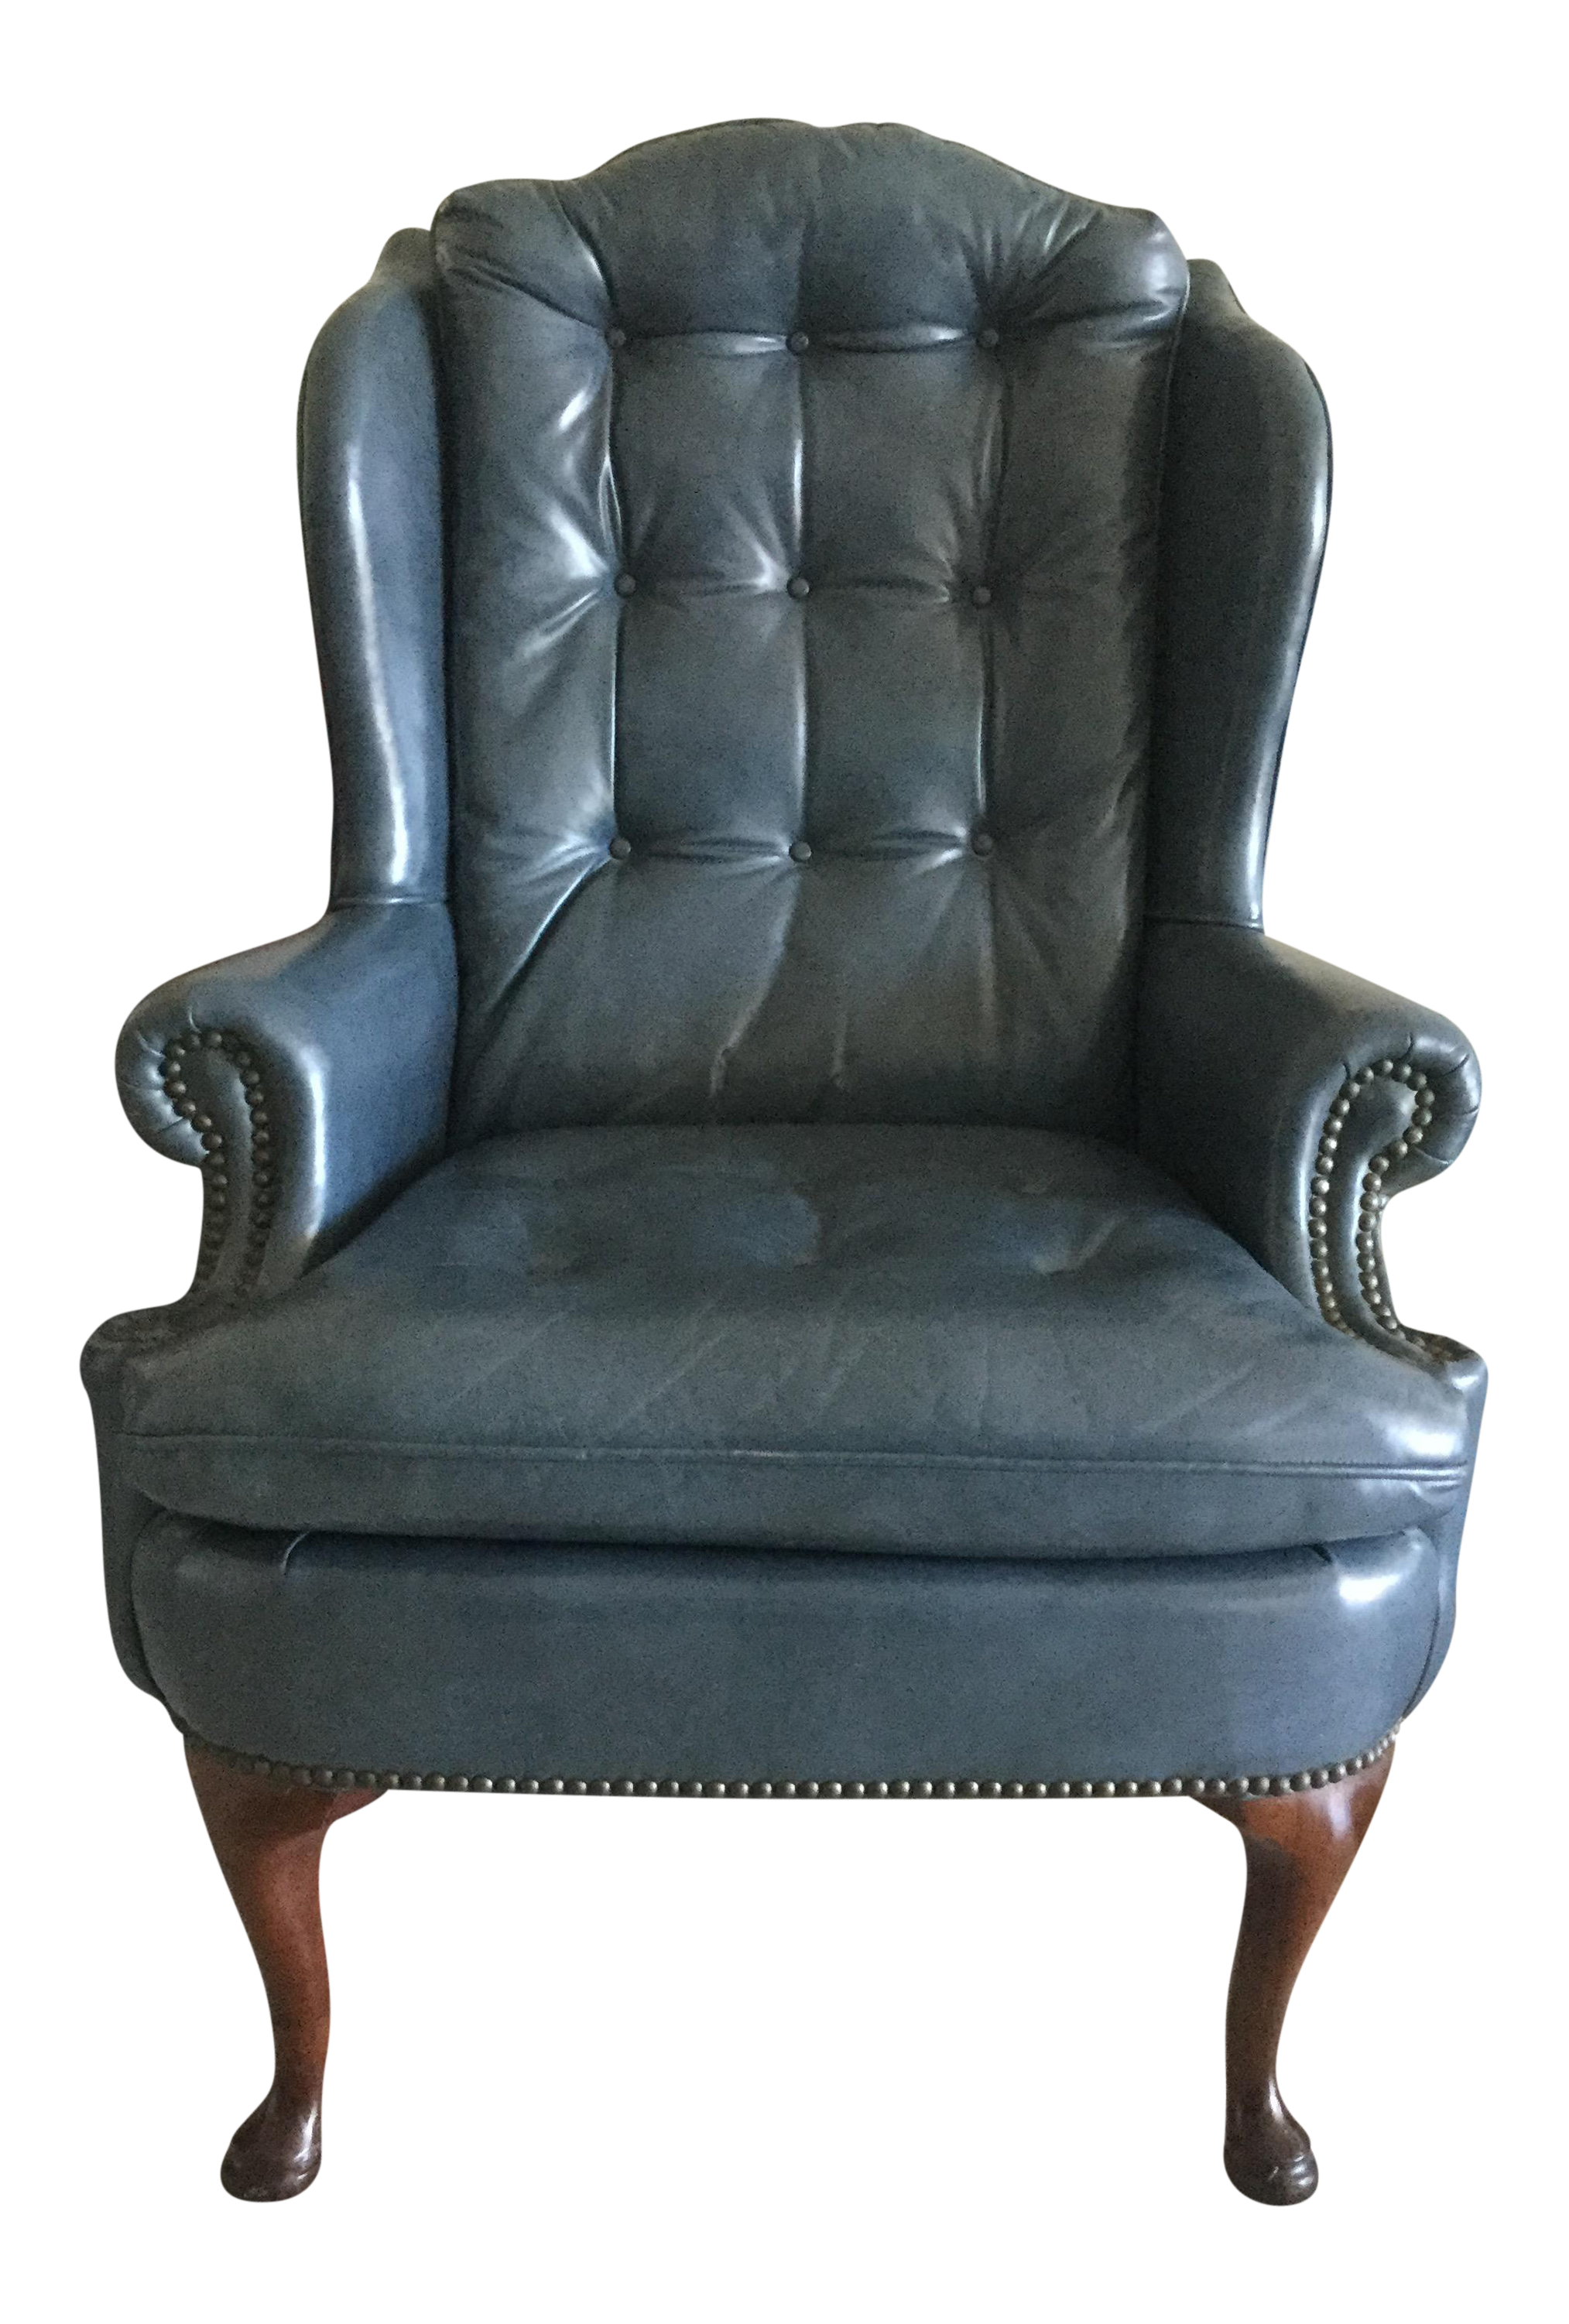 Steel Blue Leather Wingback Chair Chairish